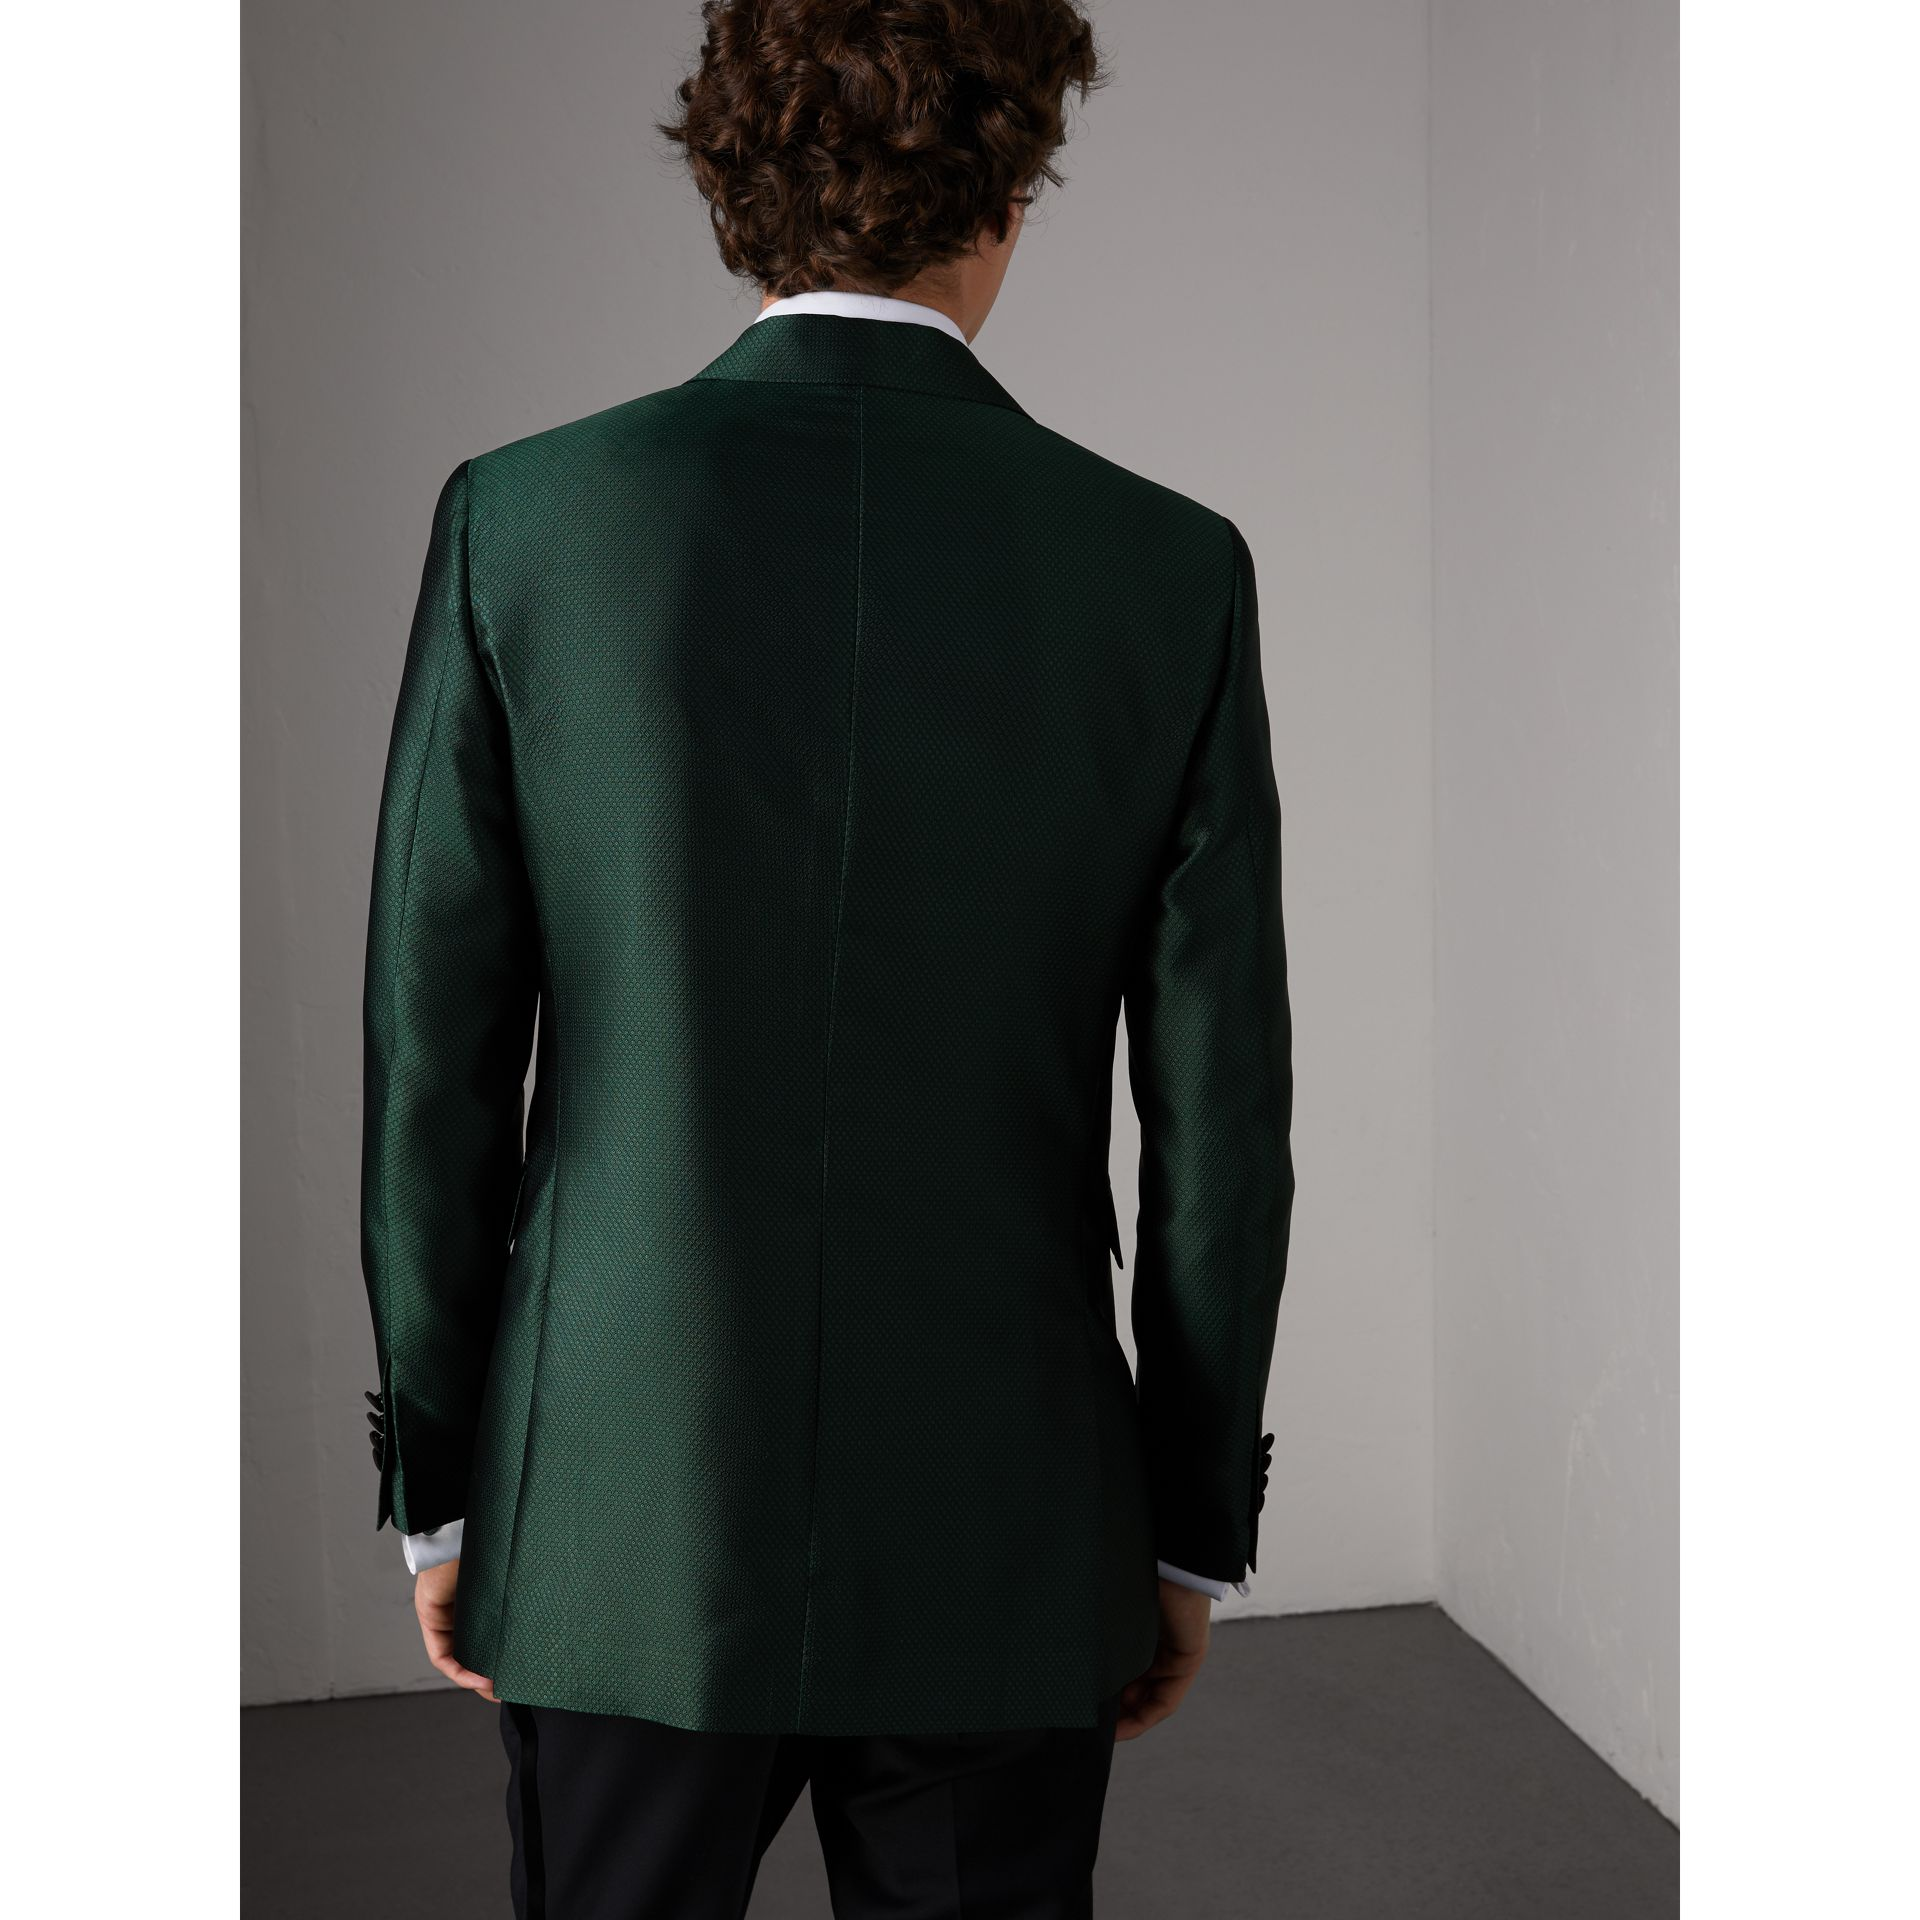 Soho Fit Jacquard Evening Jacket in Forest Green - Men | Burberry United States - gallery image 3